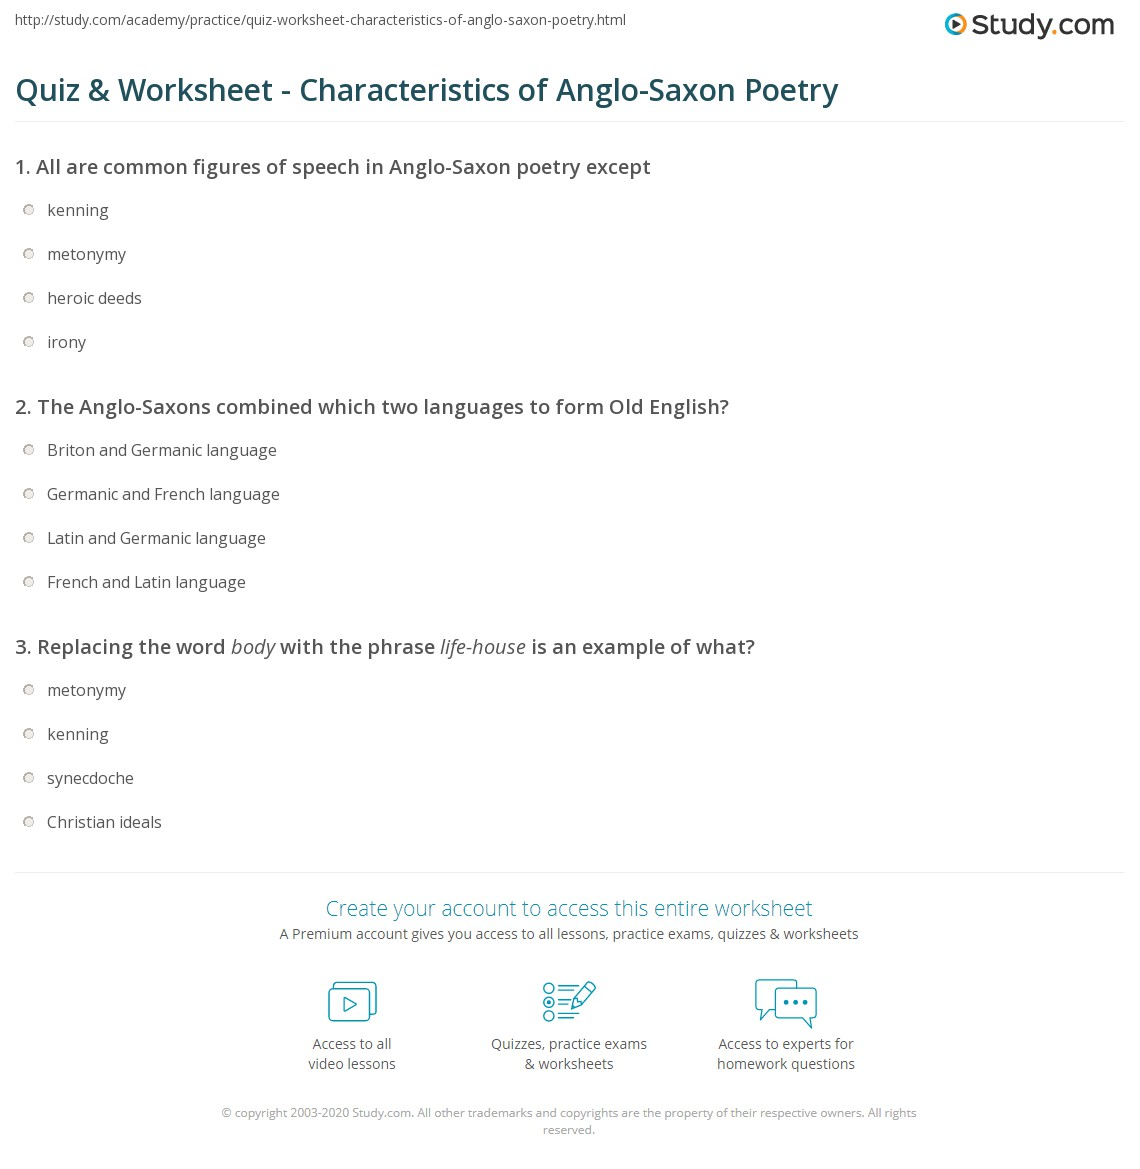 quiz worksheet characteristics of anglo saxon poetry. Black Bedroom Furniture Sets. Home Design Ideas